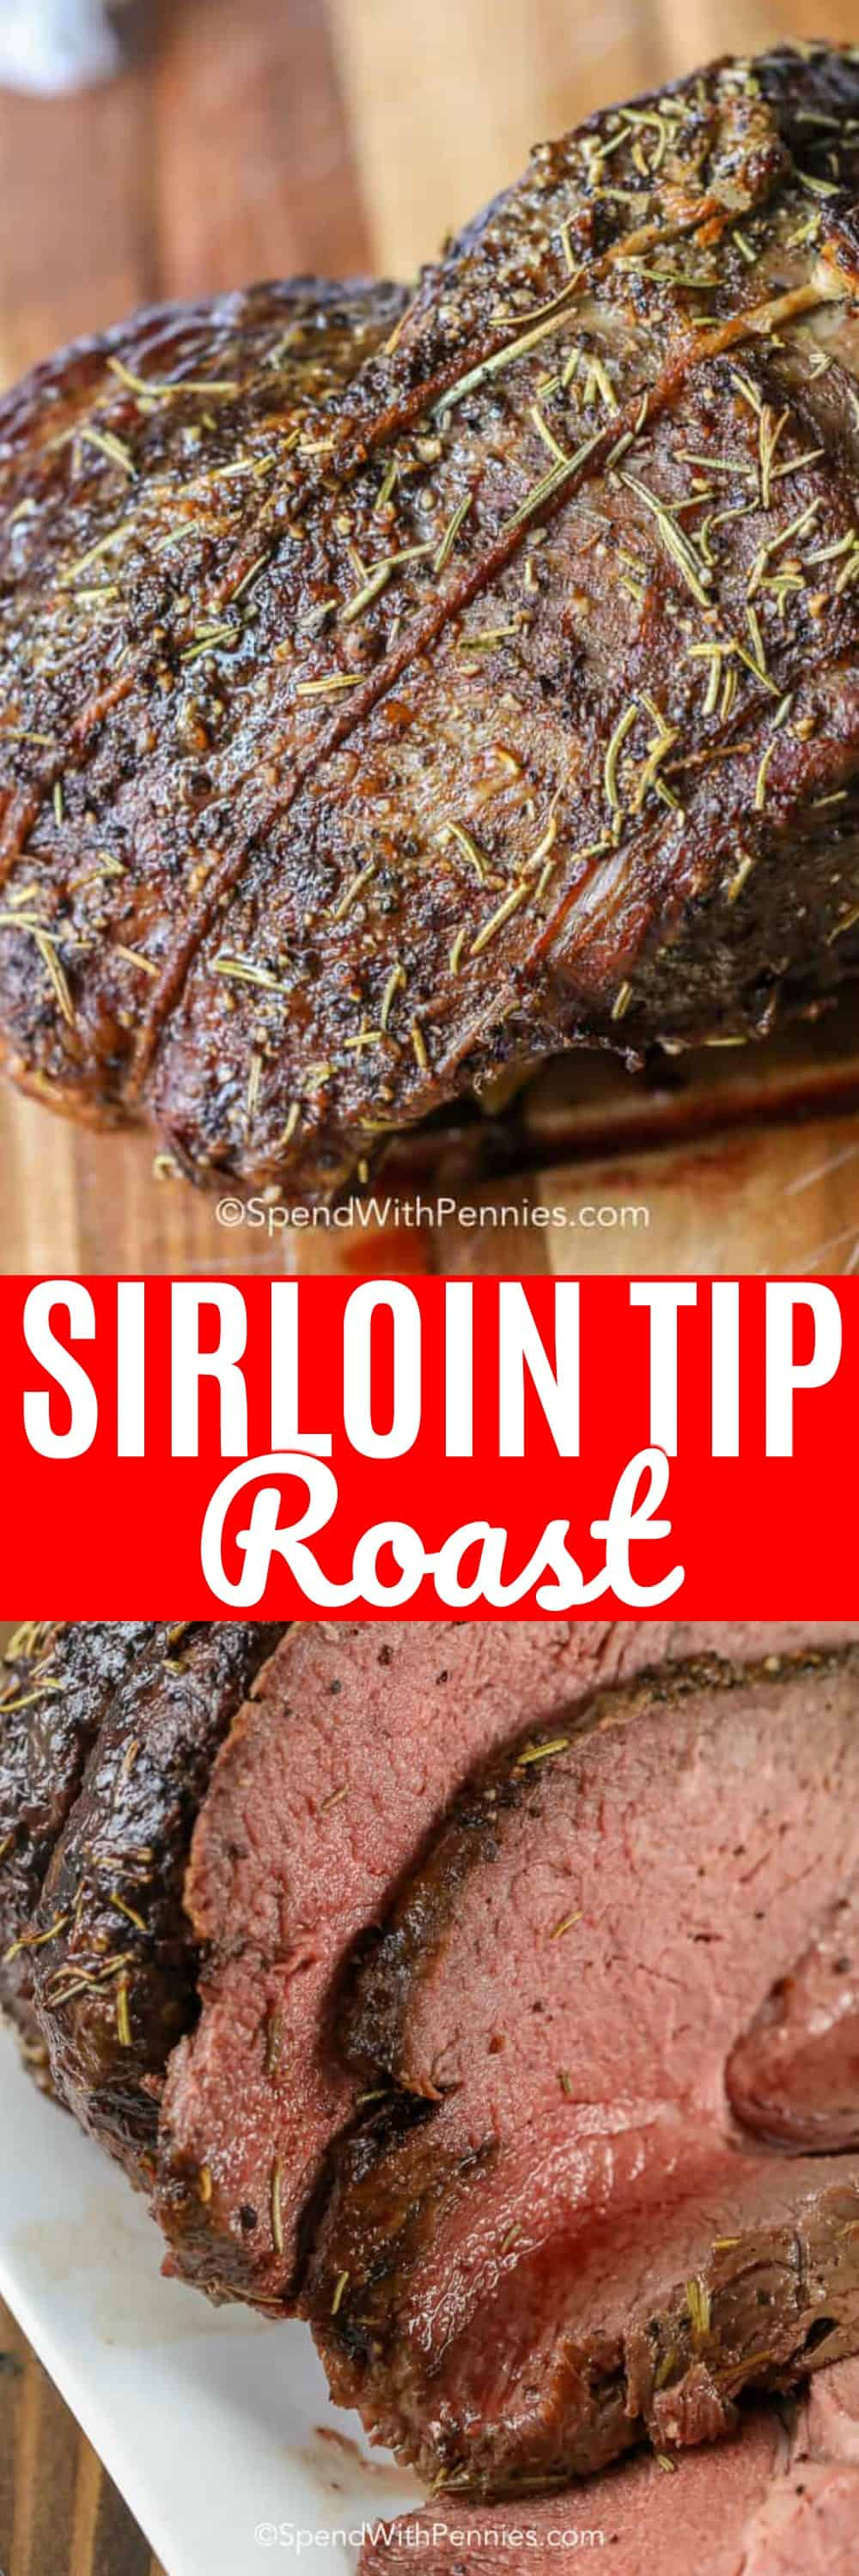 Sirloin Tip Roast with a title